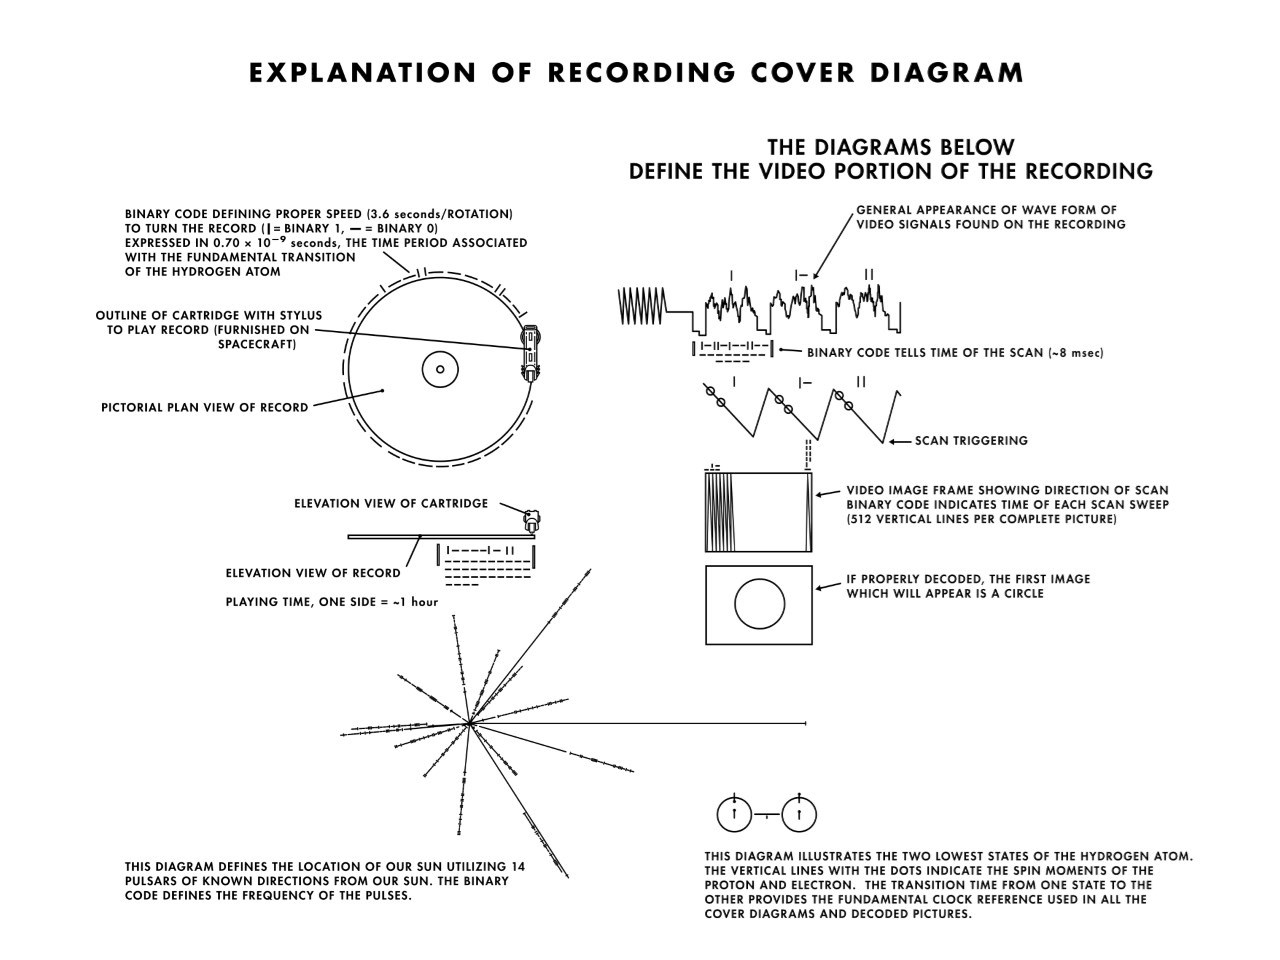 The Golden Record cover by NASA